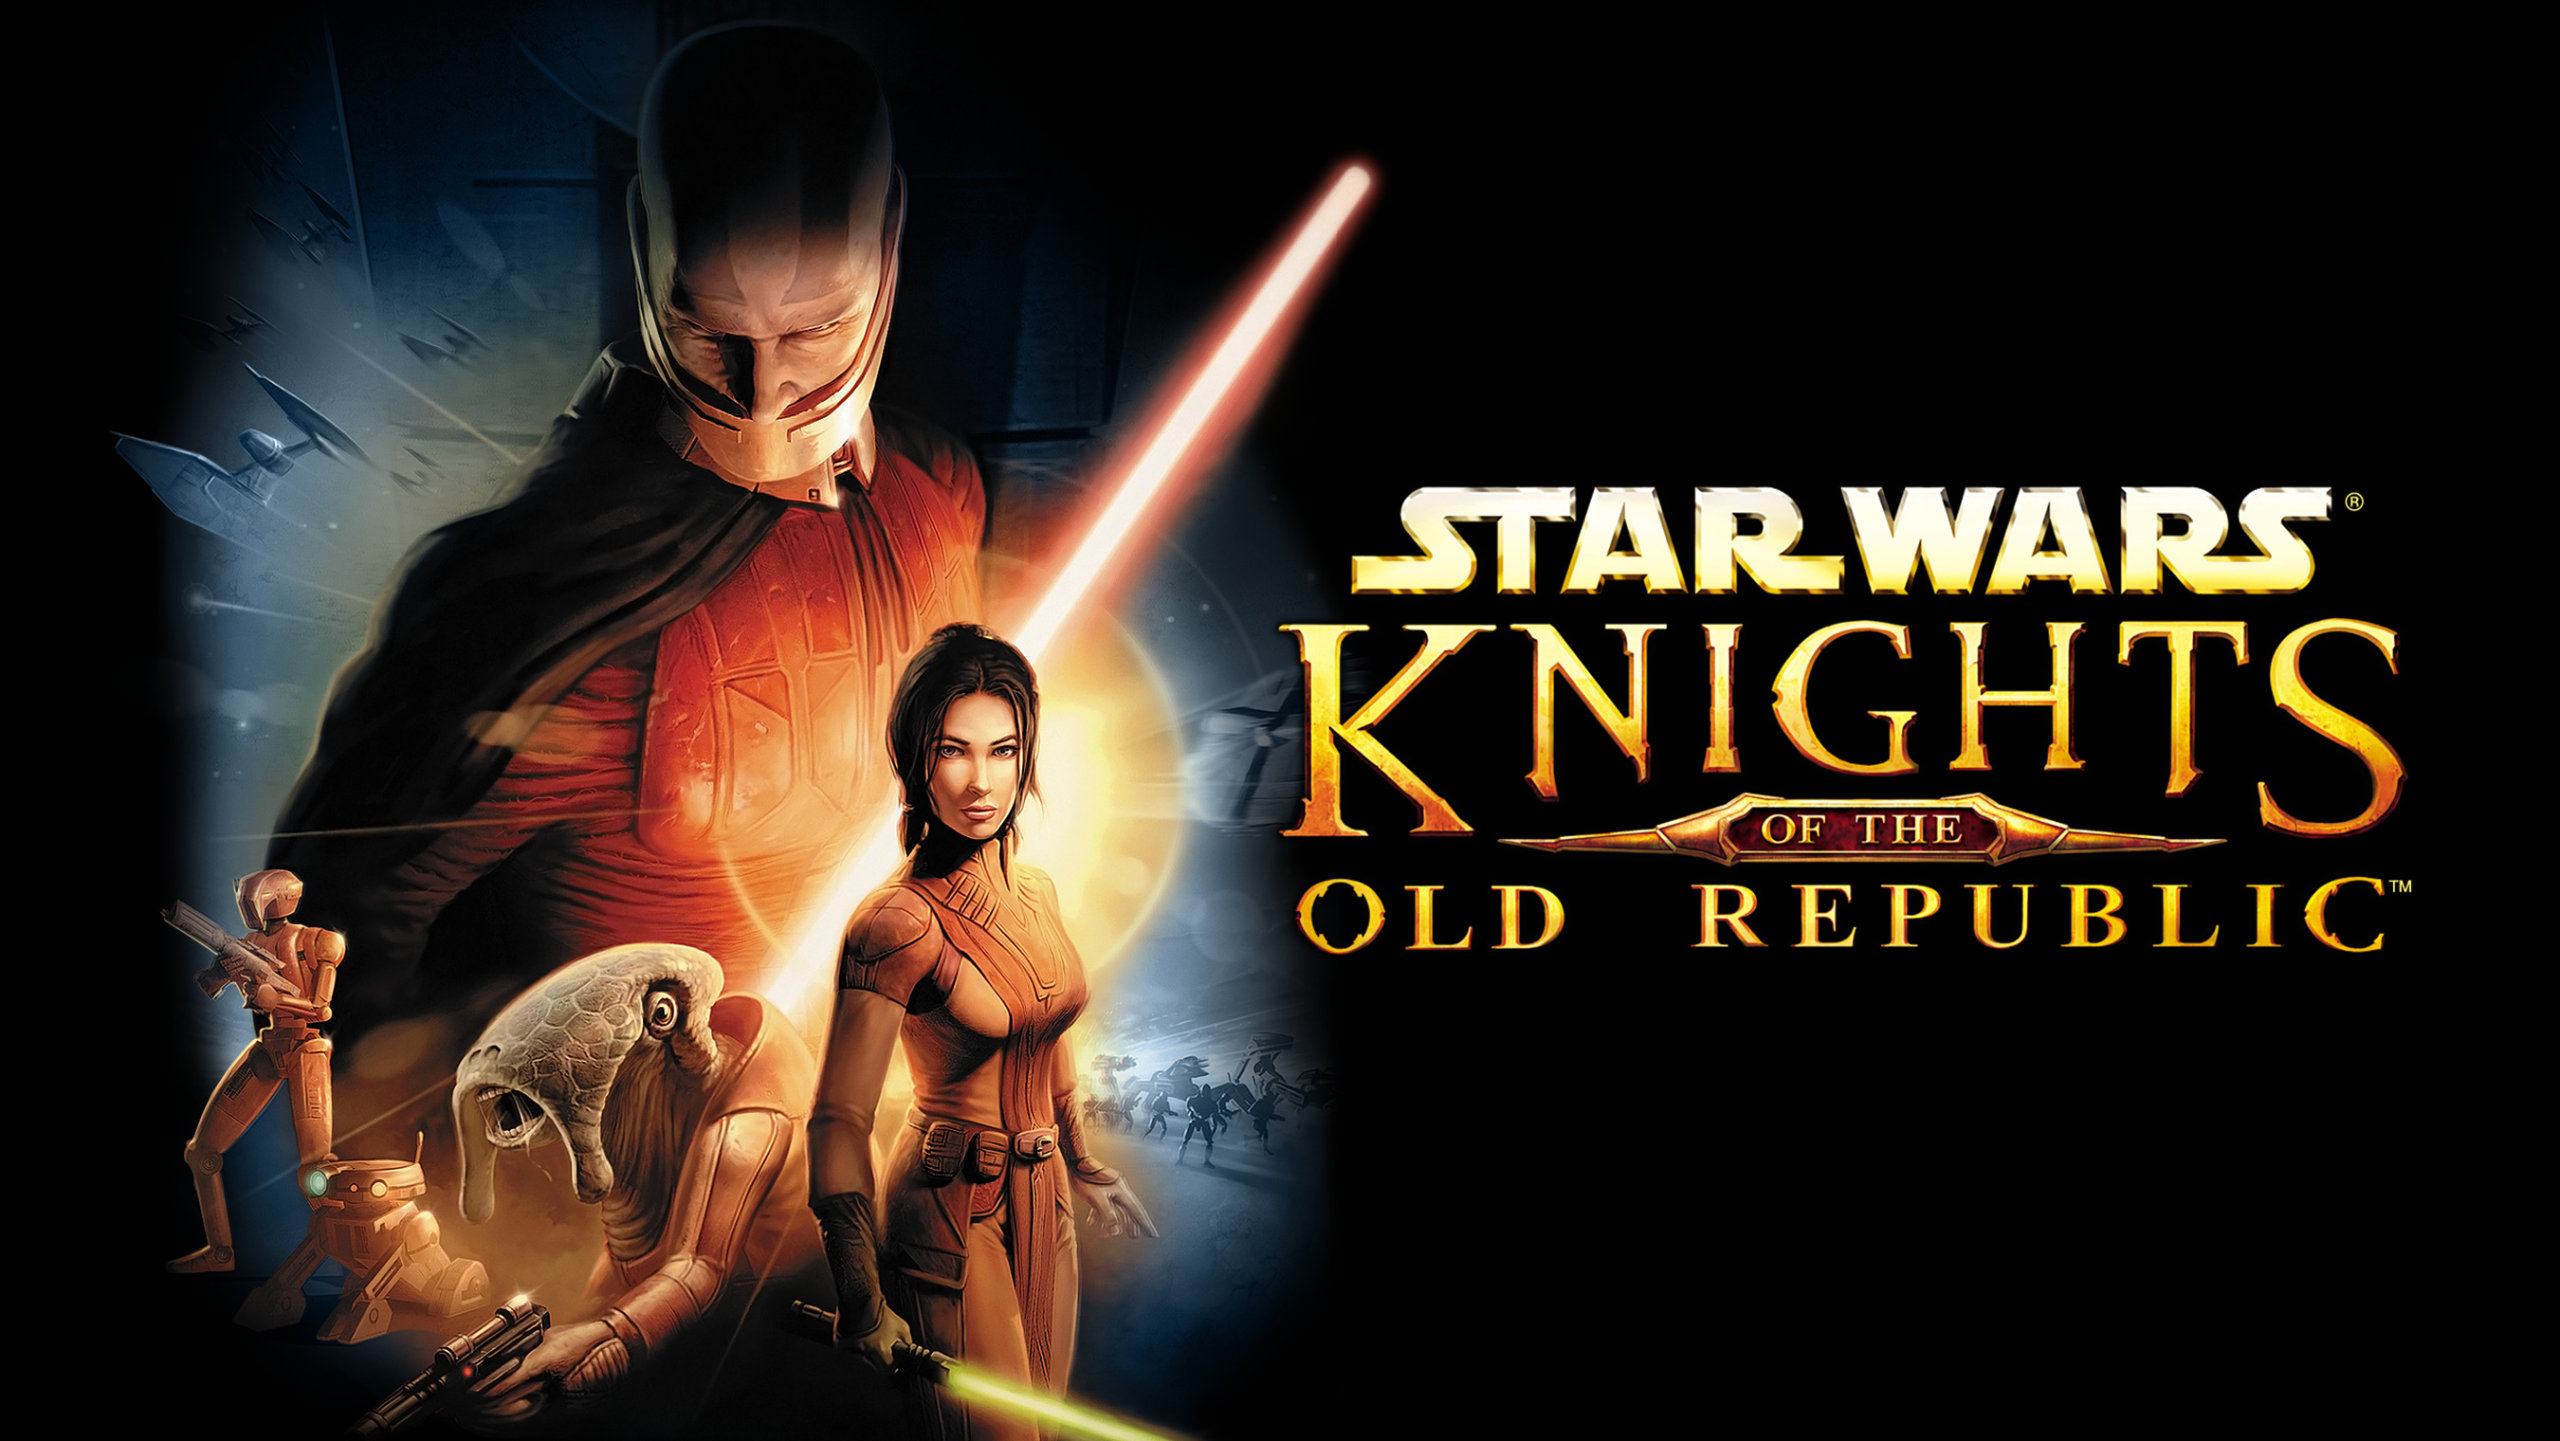 Star Wars: Knights of the Old Republic Artwork of several humanoid, alien, and droids brandishing lightsabers and blasters.